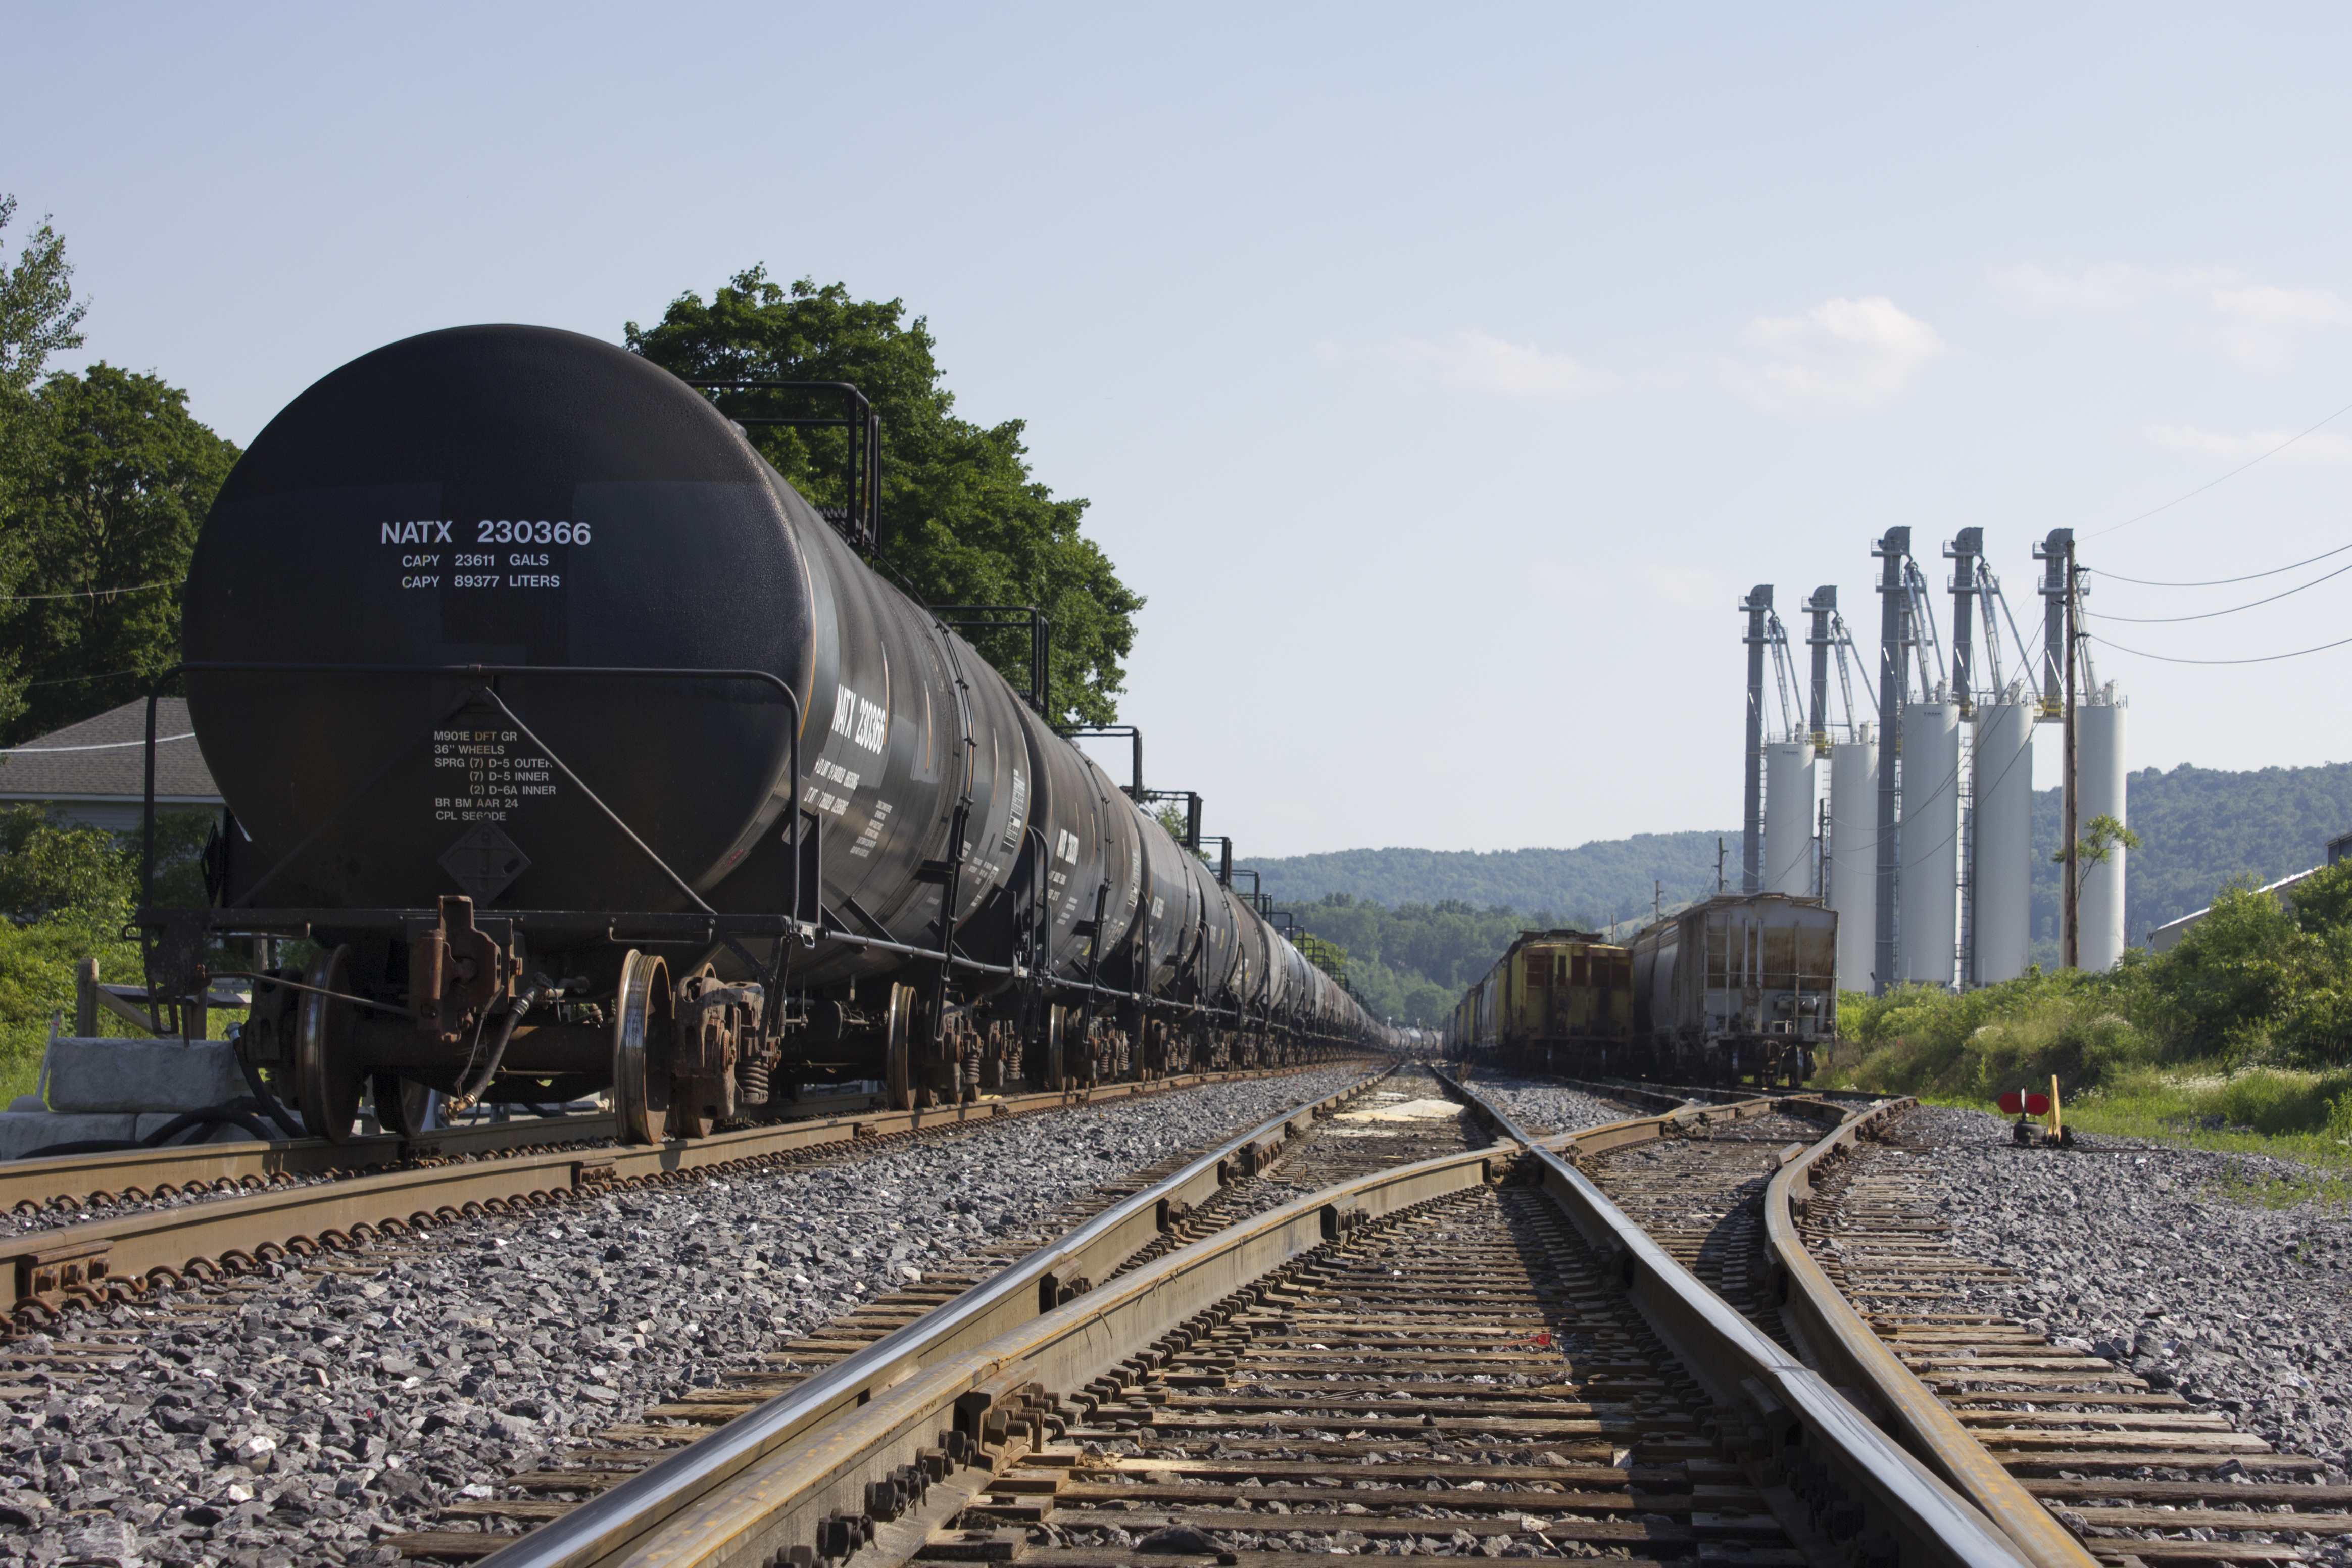 Are tighter rules for crude oil trains chugging along too slowly?